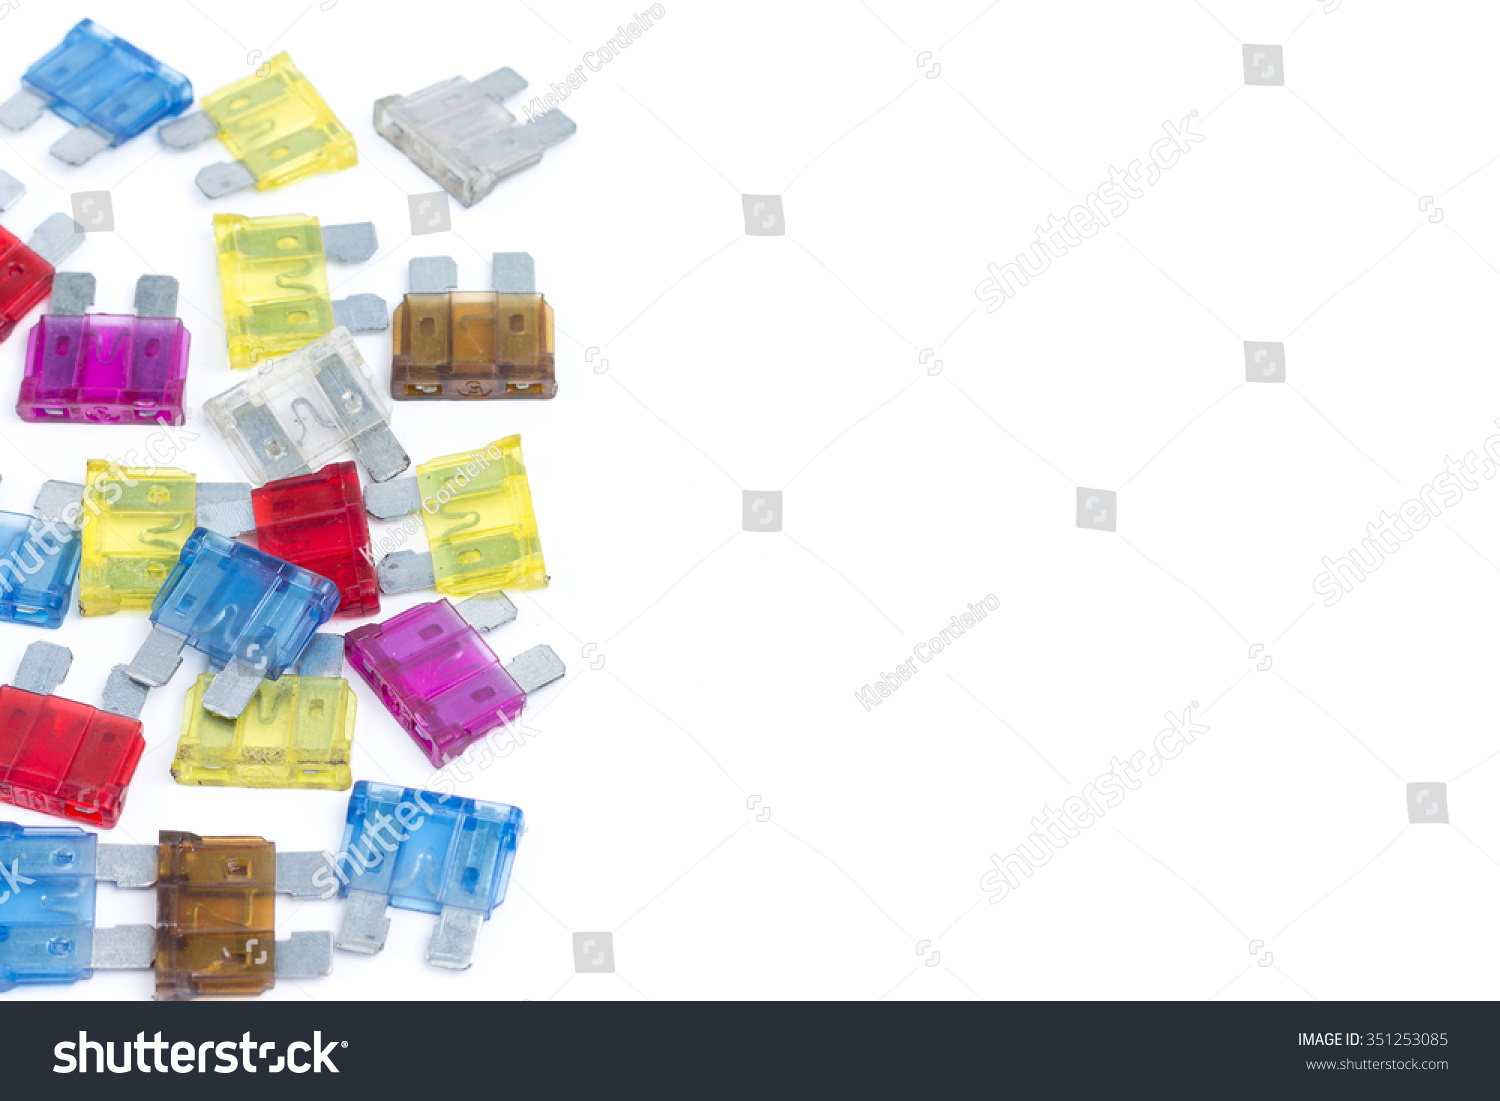 Car Fuse Pile Colorful Electrical Automotive Stock Photo